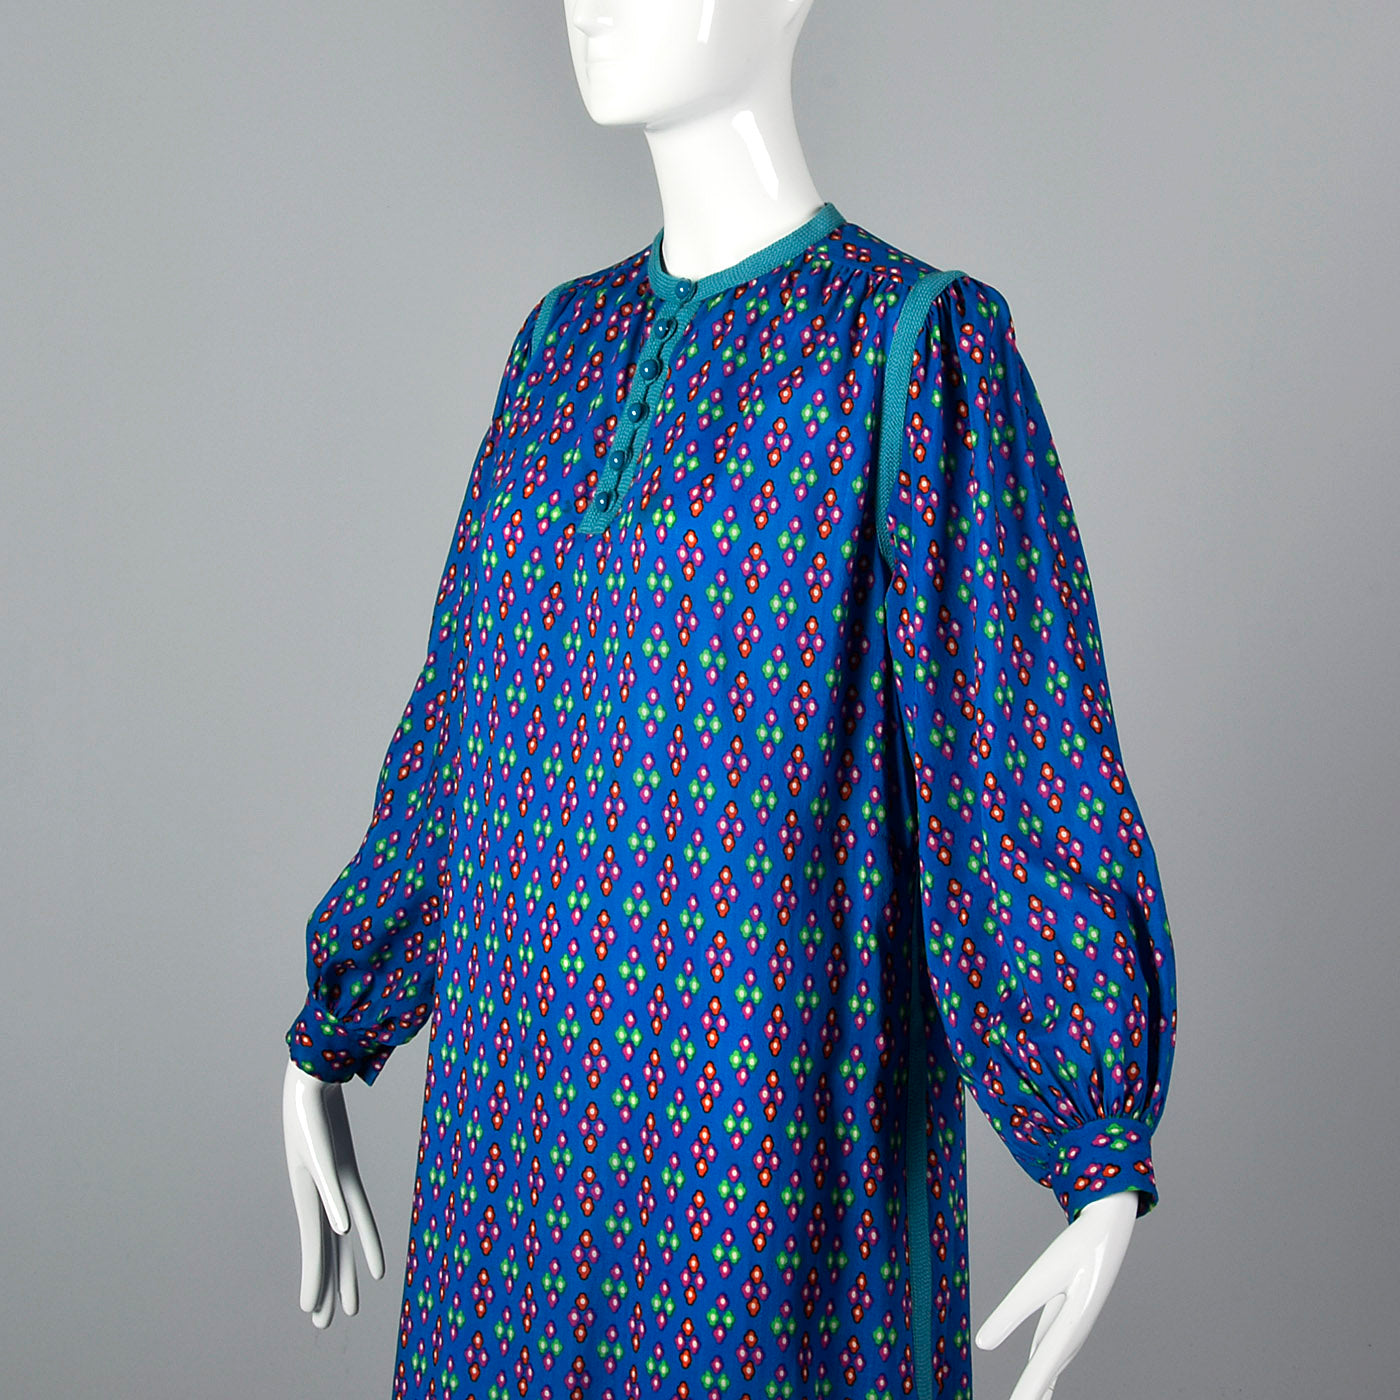 1976 Yves Saint Laurent Rive Gauche Russian Collection Blue Wool Dress